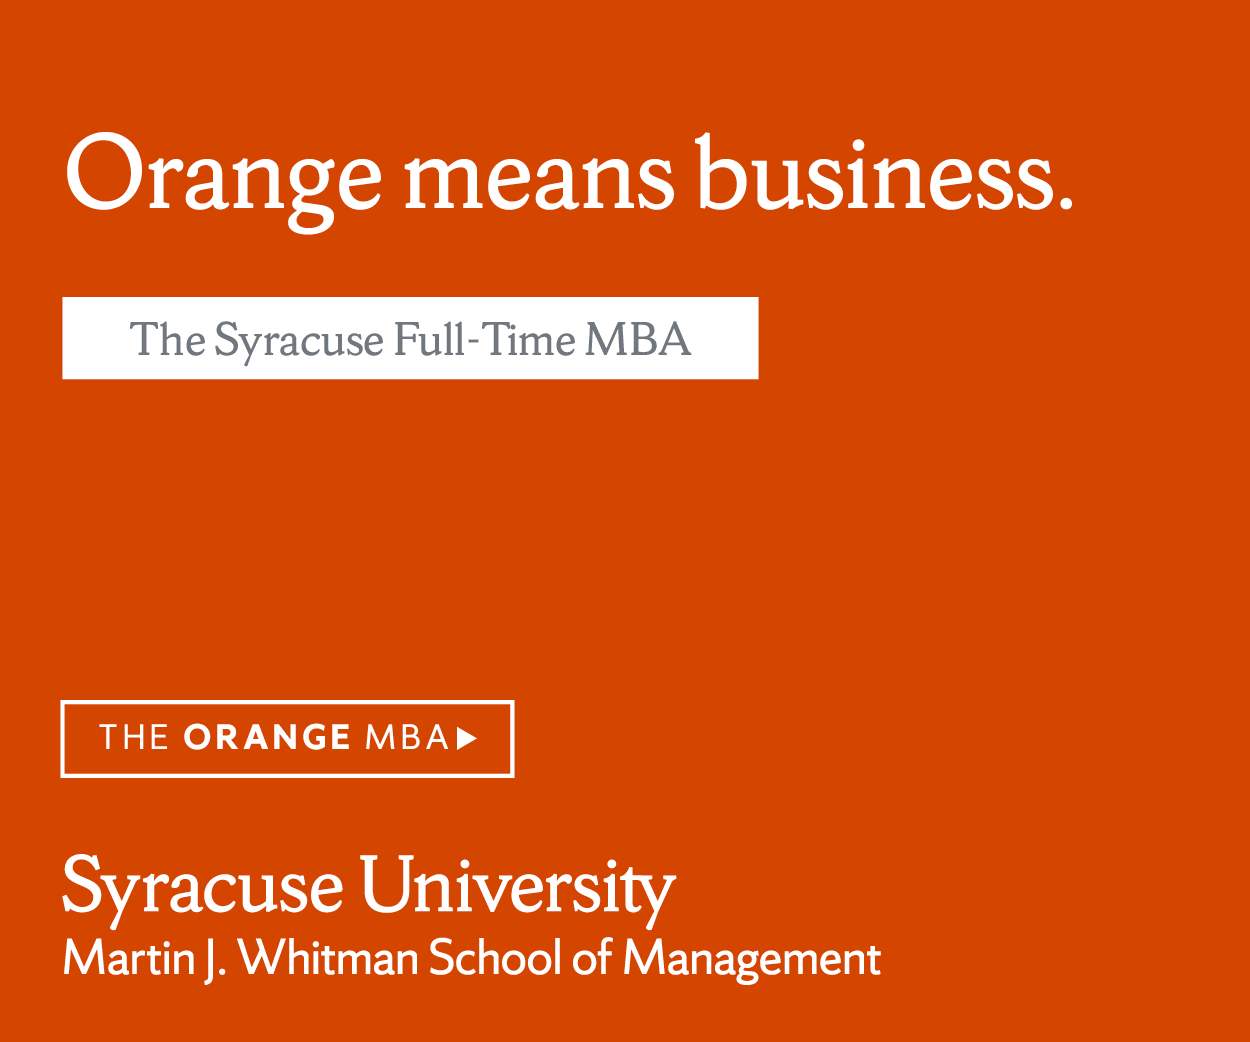 Whitman 2018 - Orange Means Business - 300x250 Alt.png